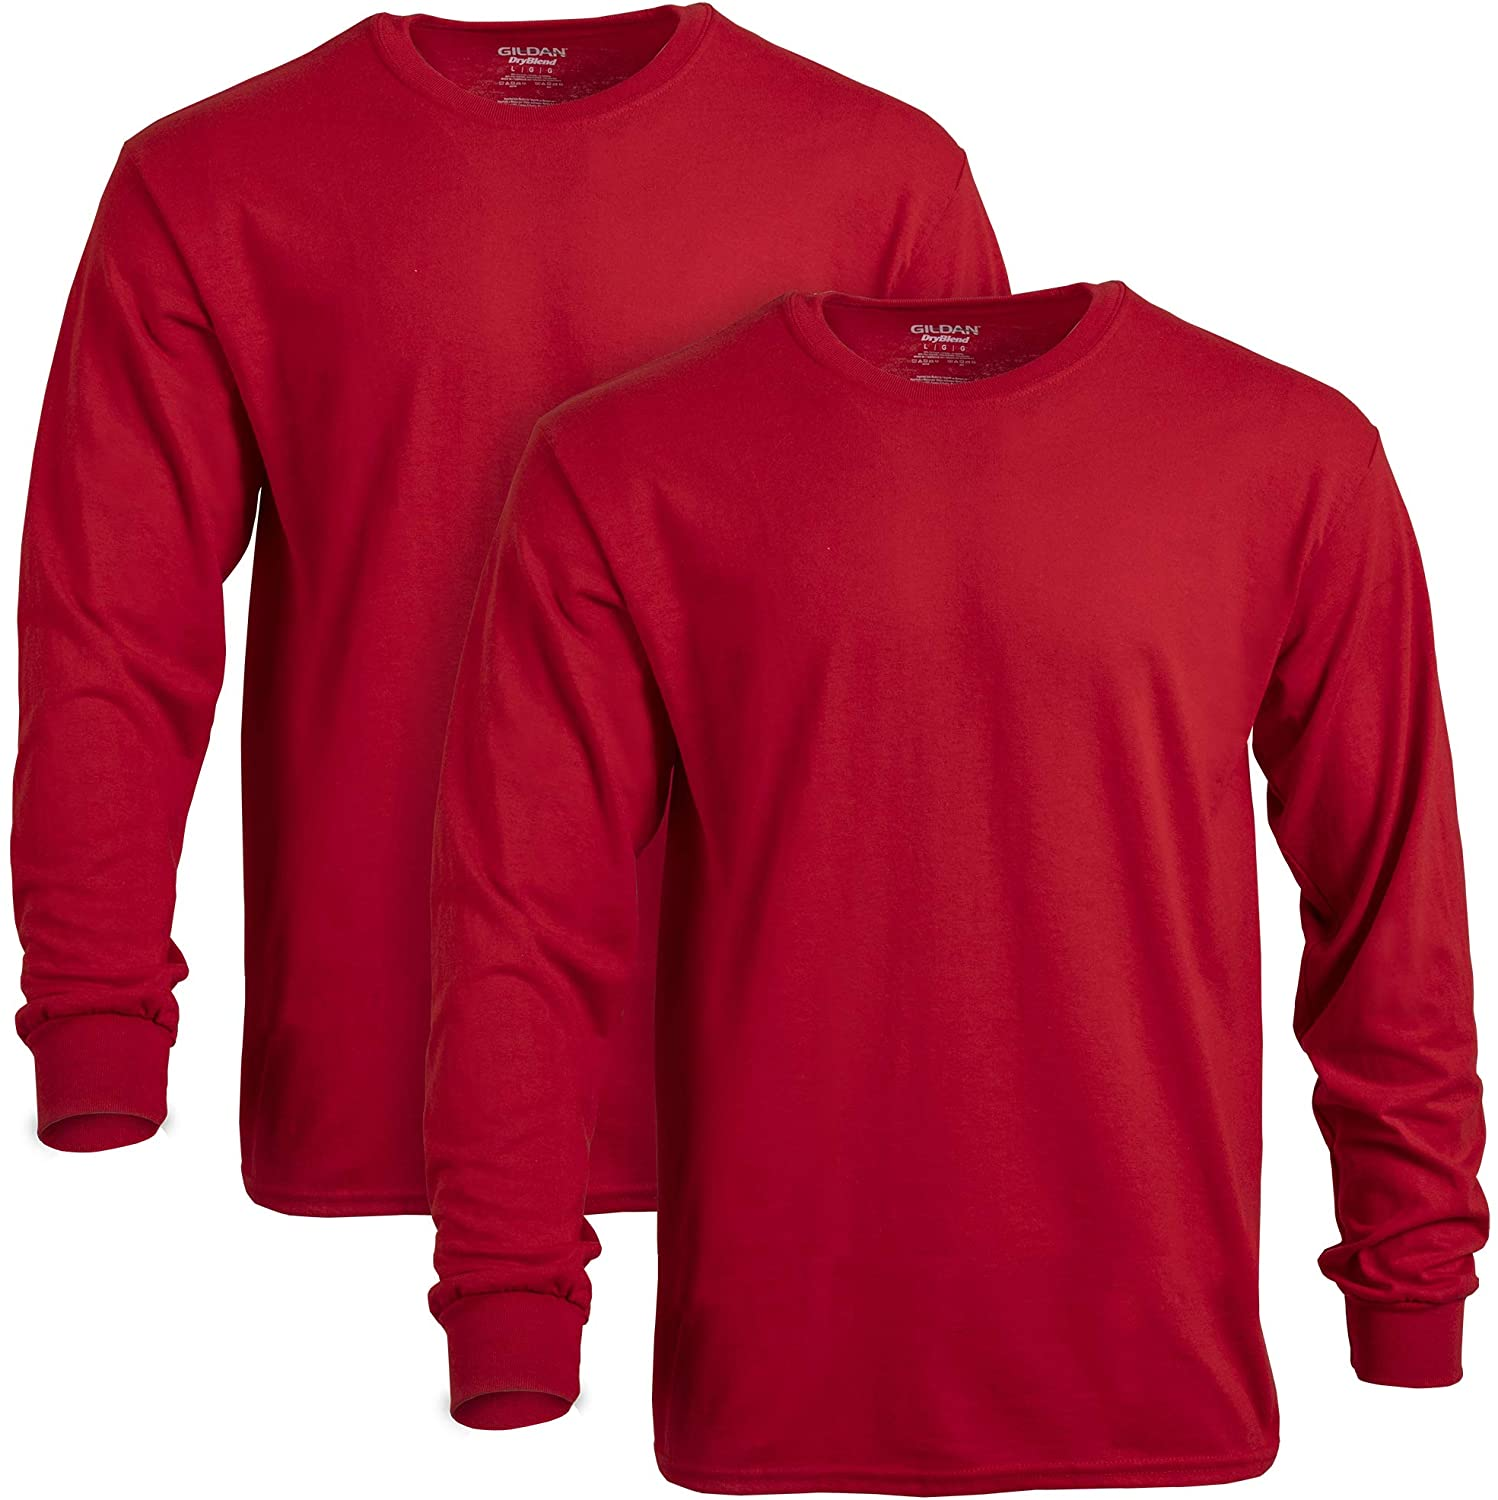 Gildan Men's DryBlend Long Sleeve T-Shirt, Style G8400, 2-Pack